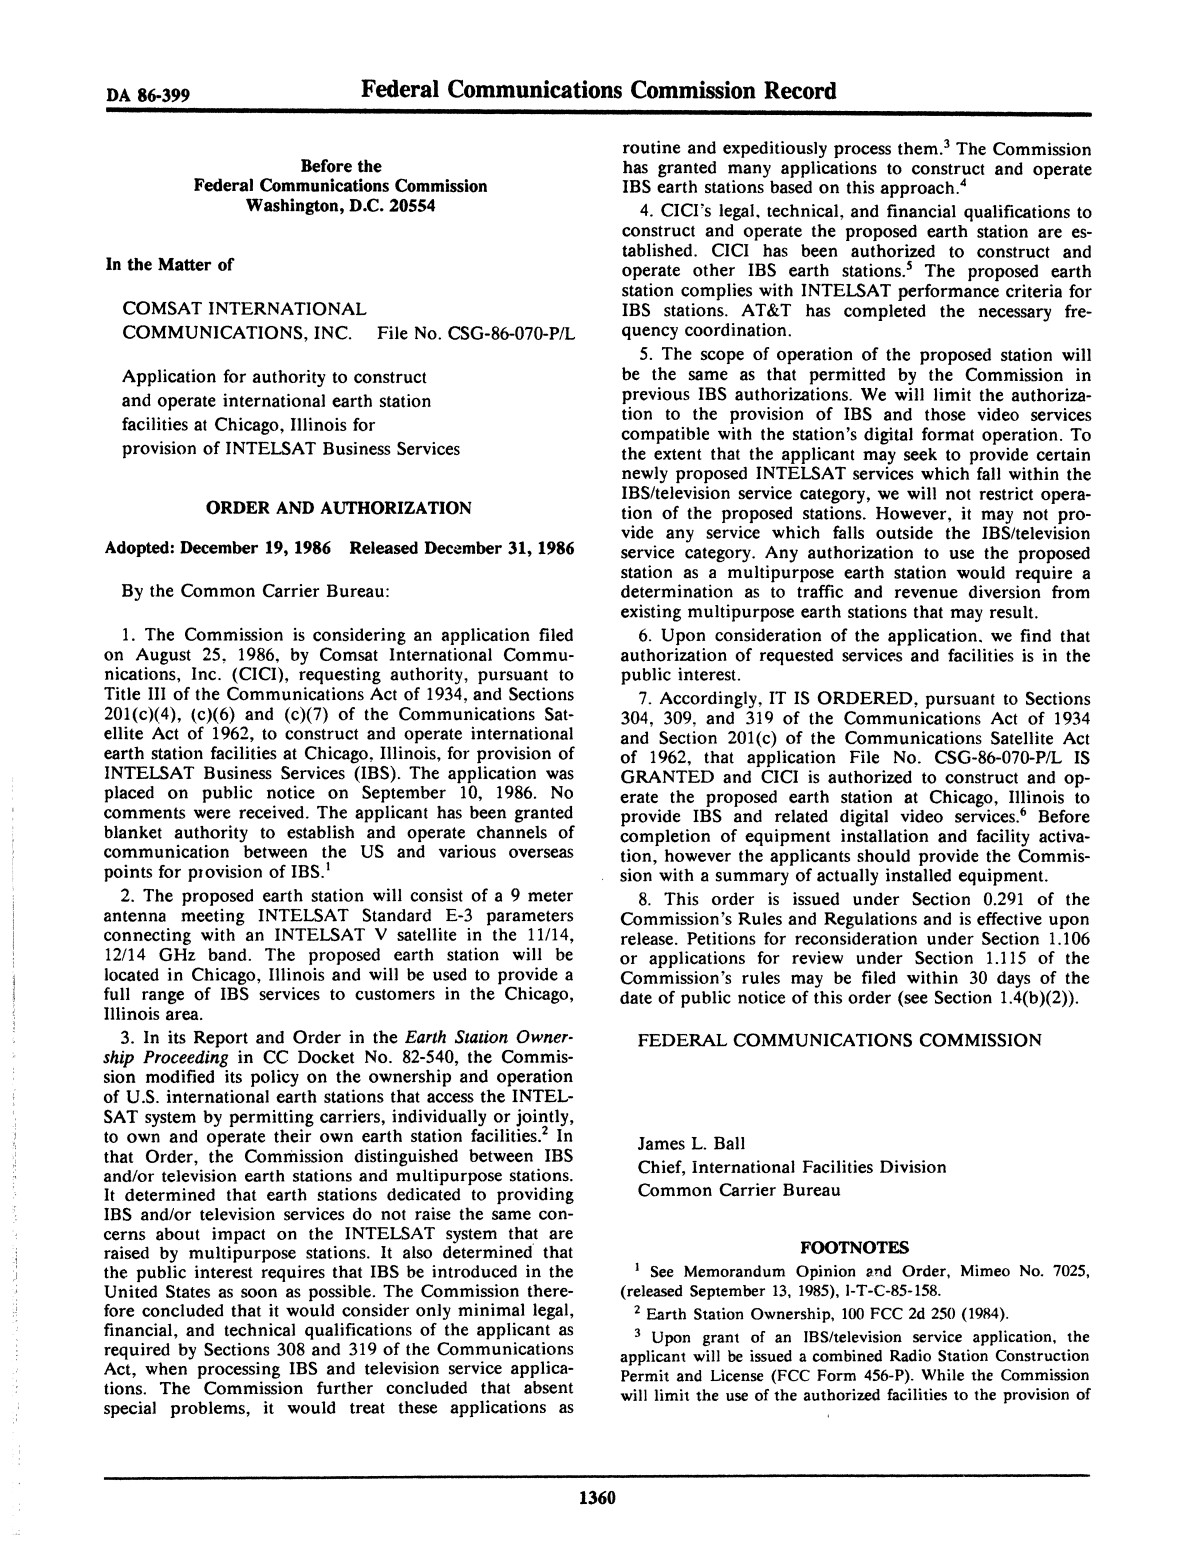 FCC Record, Volume 1, No. 7, Pages 1267 to 1368, December 22, 1986 - January 2, 1987                                                                                                      1360